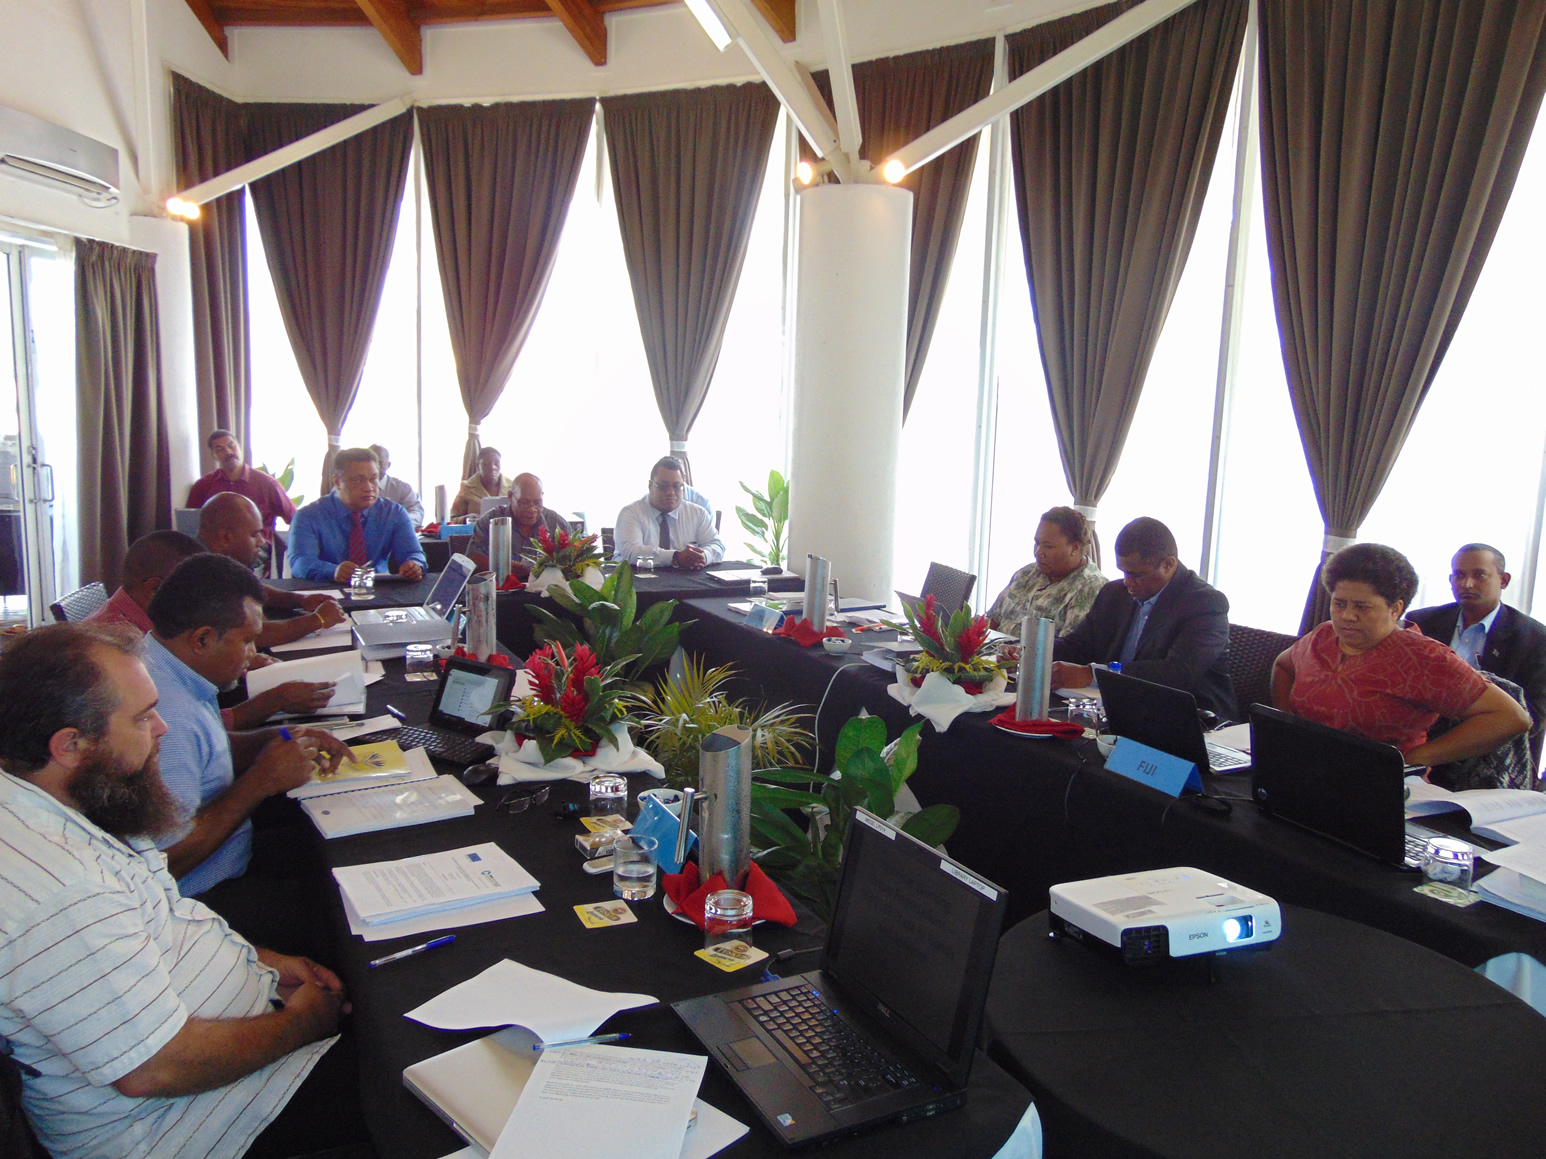 15 - 16 Oct 2015 - Trade Working Group - Port Vila 6